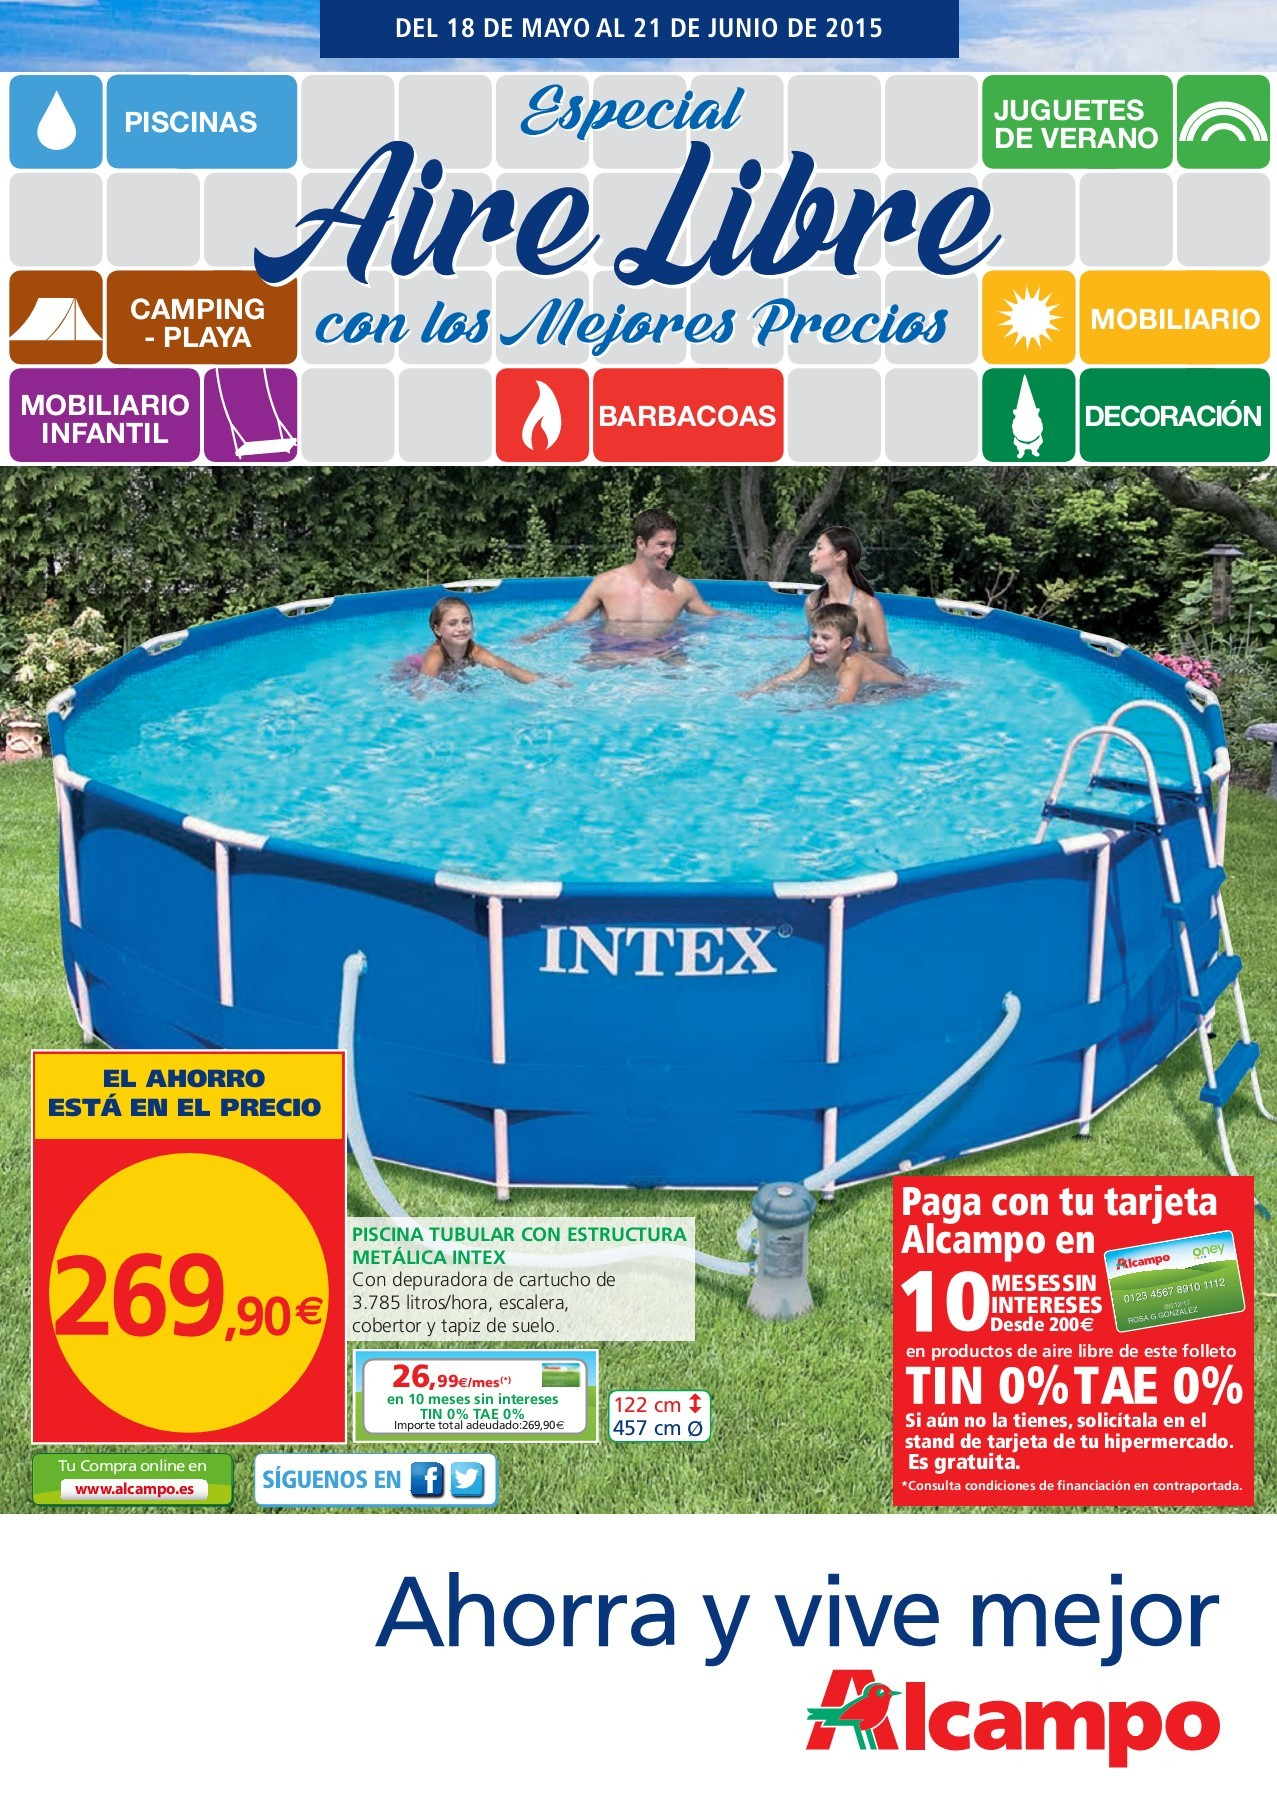 Piscinas Hinchables Con Depuradora Carrefour Especial Aire Libre Outdoor Verano 2015 Pages 1 37 Text